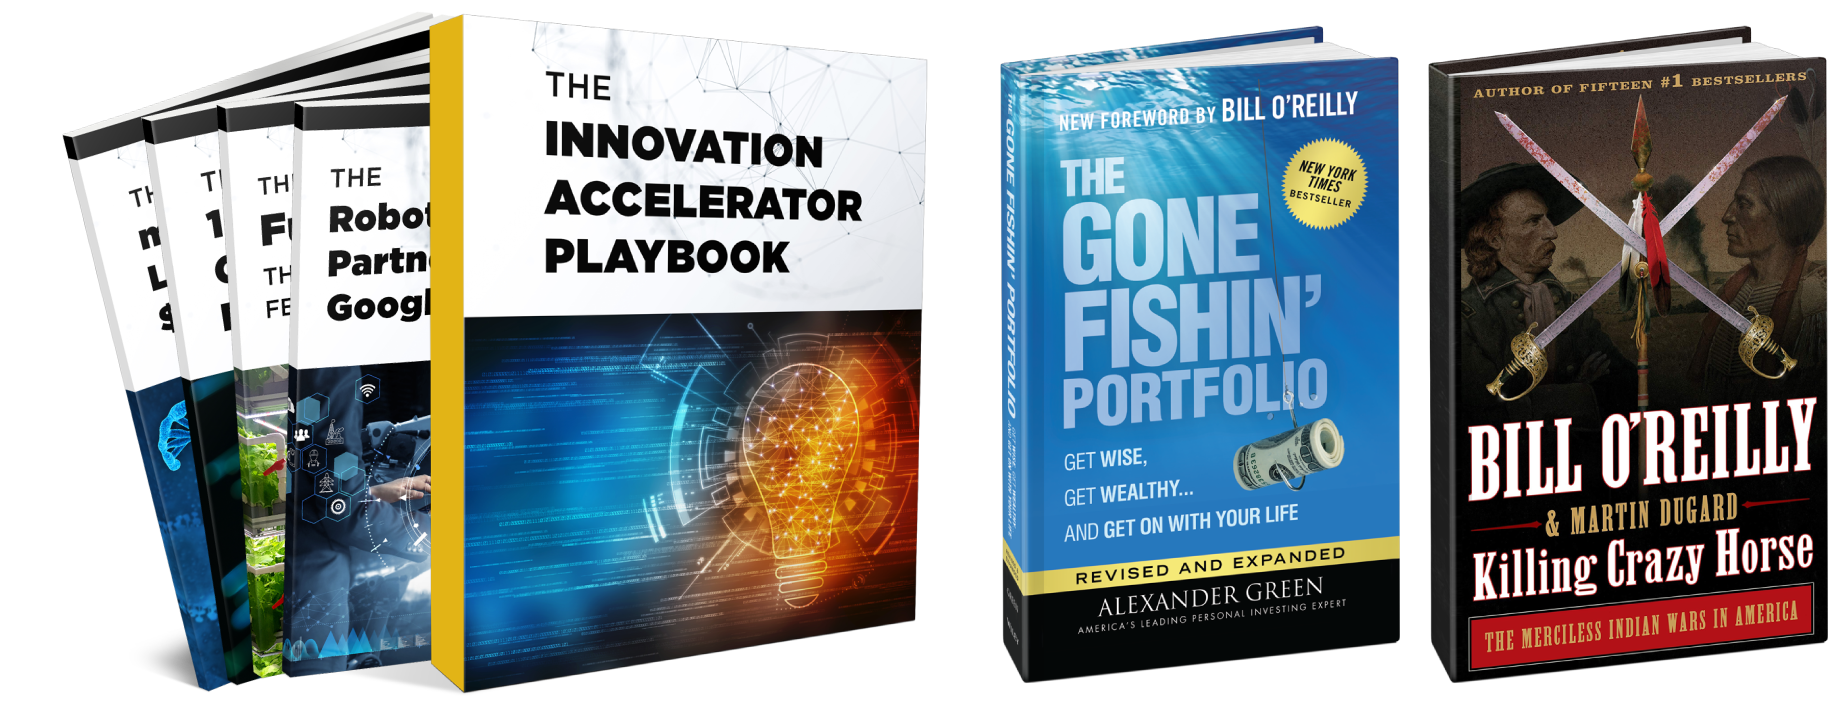 Innovation Accelerator Playbook